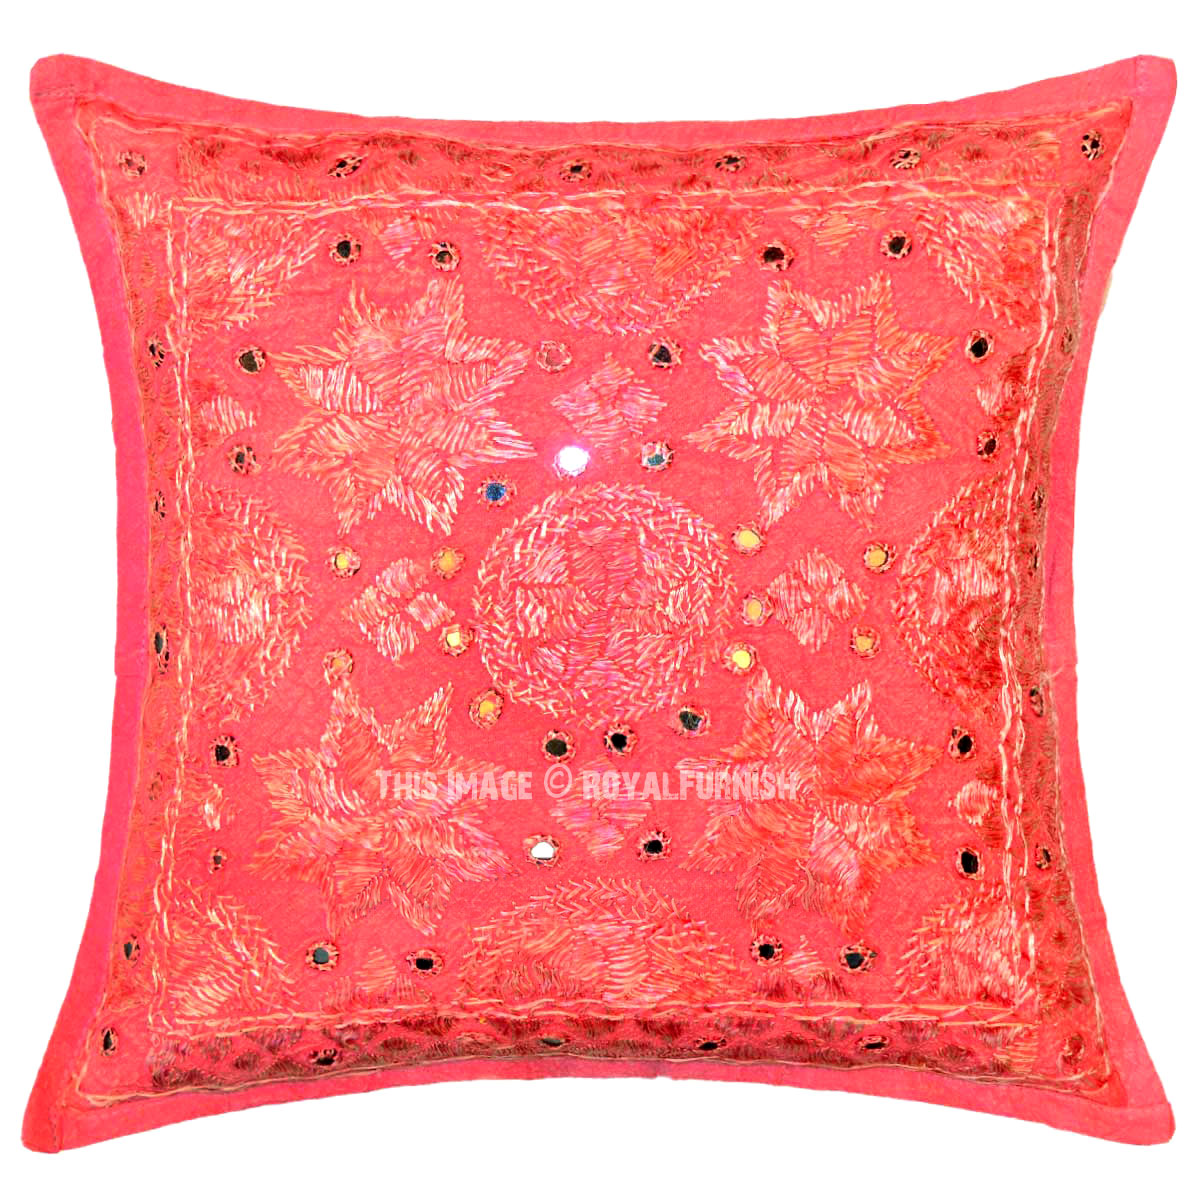 Pink Multi Small Star Mirrored Unique Cotton Throw Pillow Cover 16X16 Inch - RoyalFurnish.com